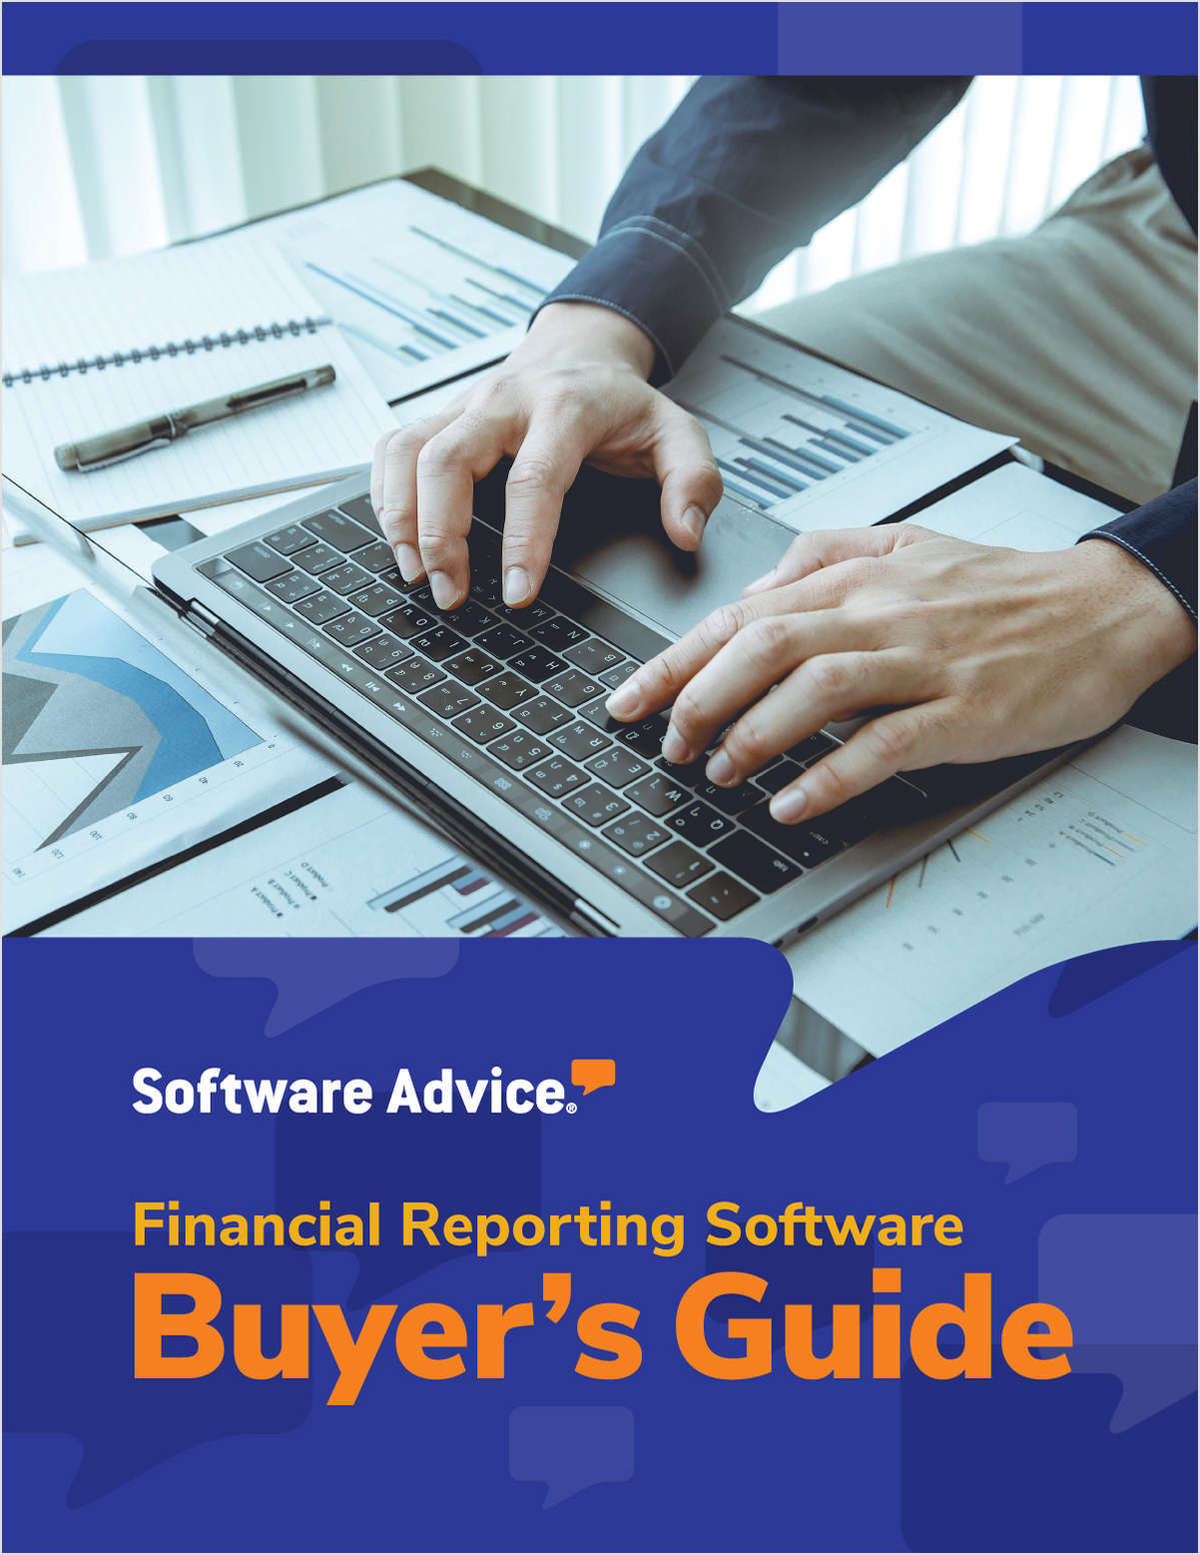 A 2020 Buyer's Guide to Financial Reporting Software